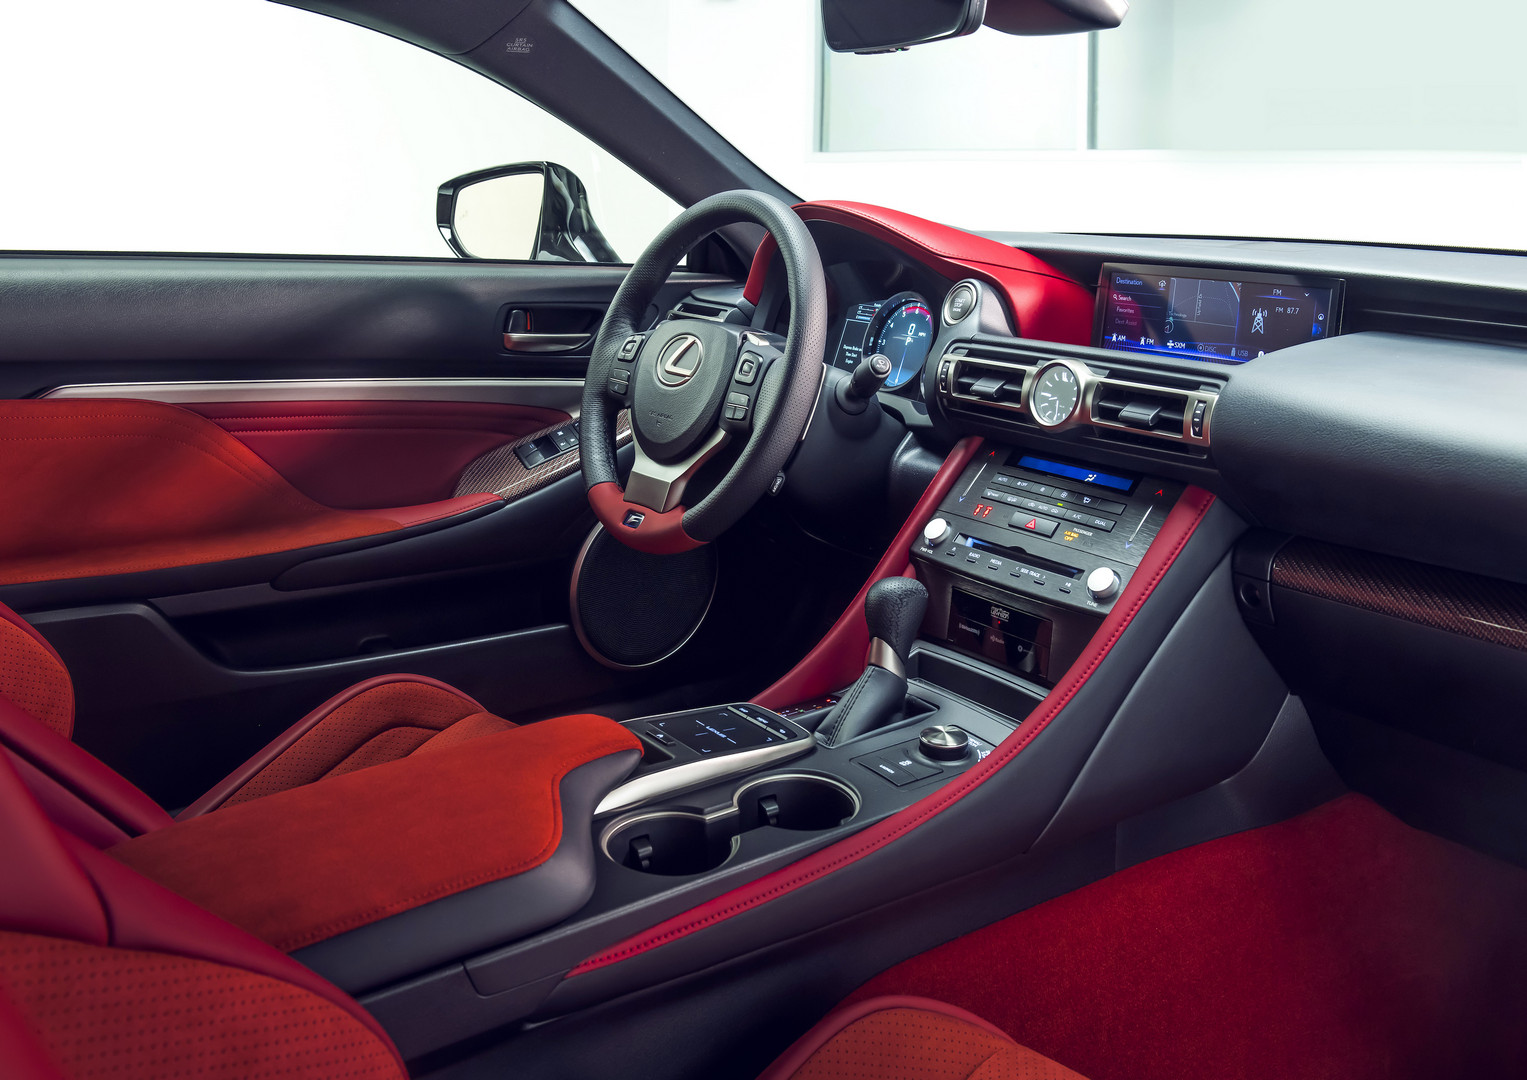 Facelift Lexus Rc F And Lexus Rc F Track Edition Revealed